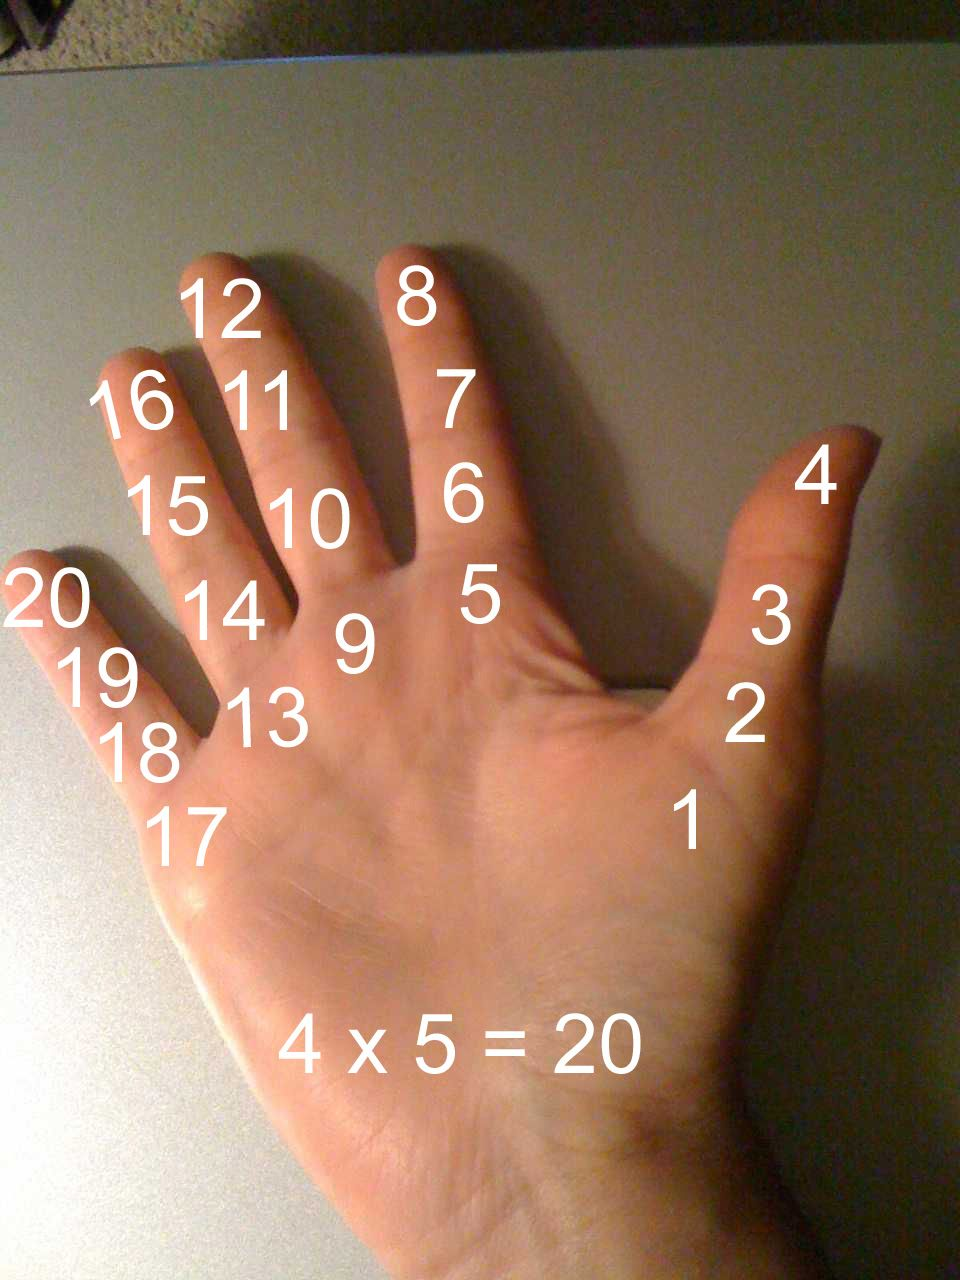 Why Werent We Taught To Multiply This Way I Never Knew Any Of The